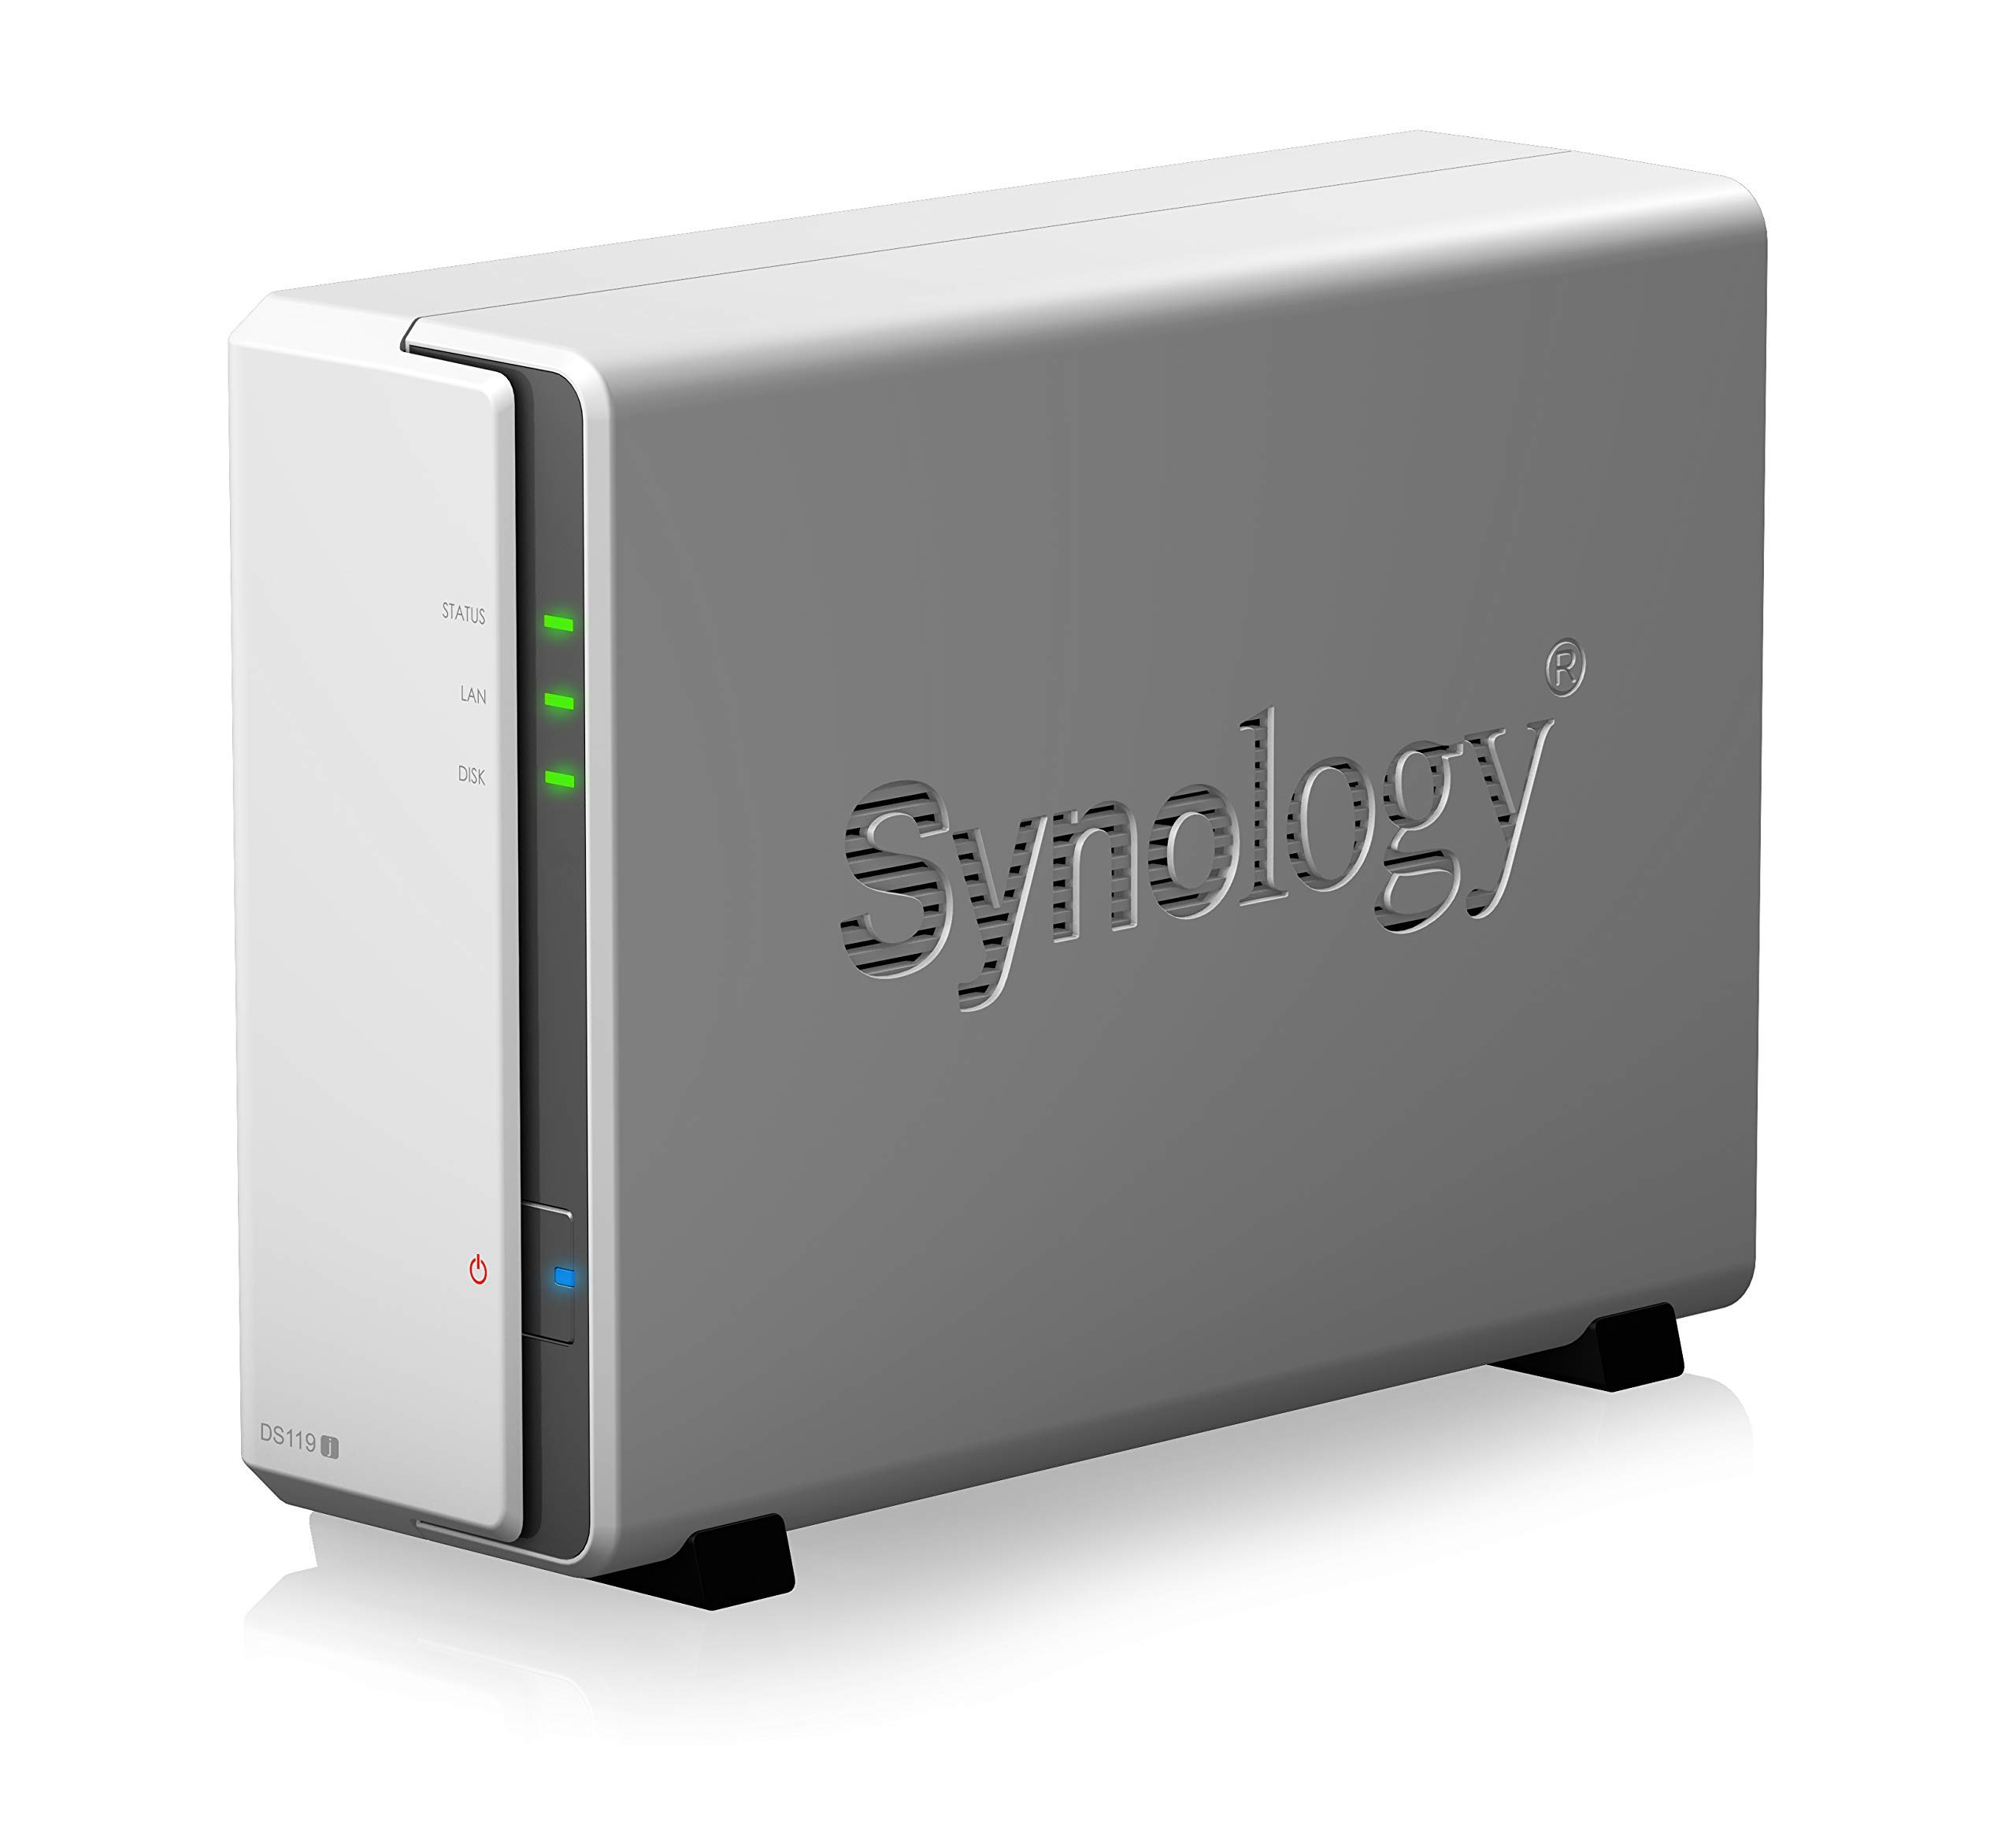 Synology Disk Station 2-Bay Diskless Network Attached Storage (DS216se) (Certified Refurbished) 6 This Certified Refurbished product is tested and certified to look and work like new. The refurbishing process includes functionality testing, basic cleaning, inspection, and repackaging. The product ships with all relevant accessories, a minimum 90-day warranty, and may arrive in a generic box. Only select sellers who maintain a high performance bar may offer Certified Refurbished products on Amazon.com CPU Model : Marvell Armada 385 88F6820 Noise Level 20.6 dB(A)